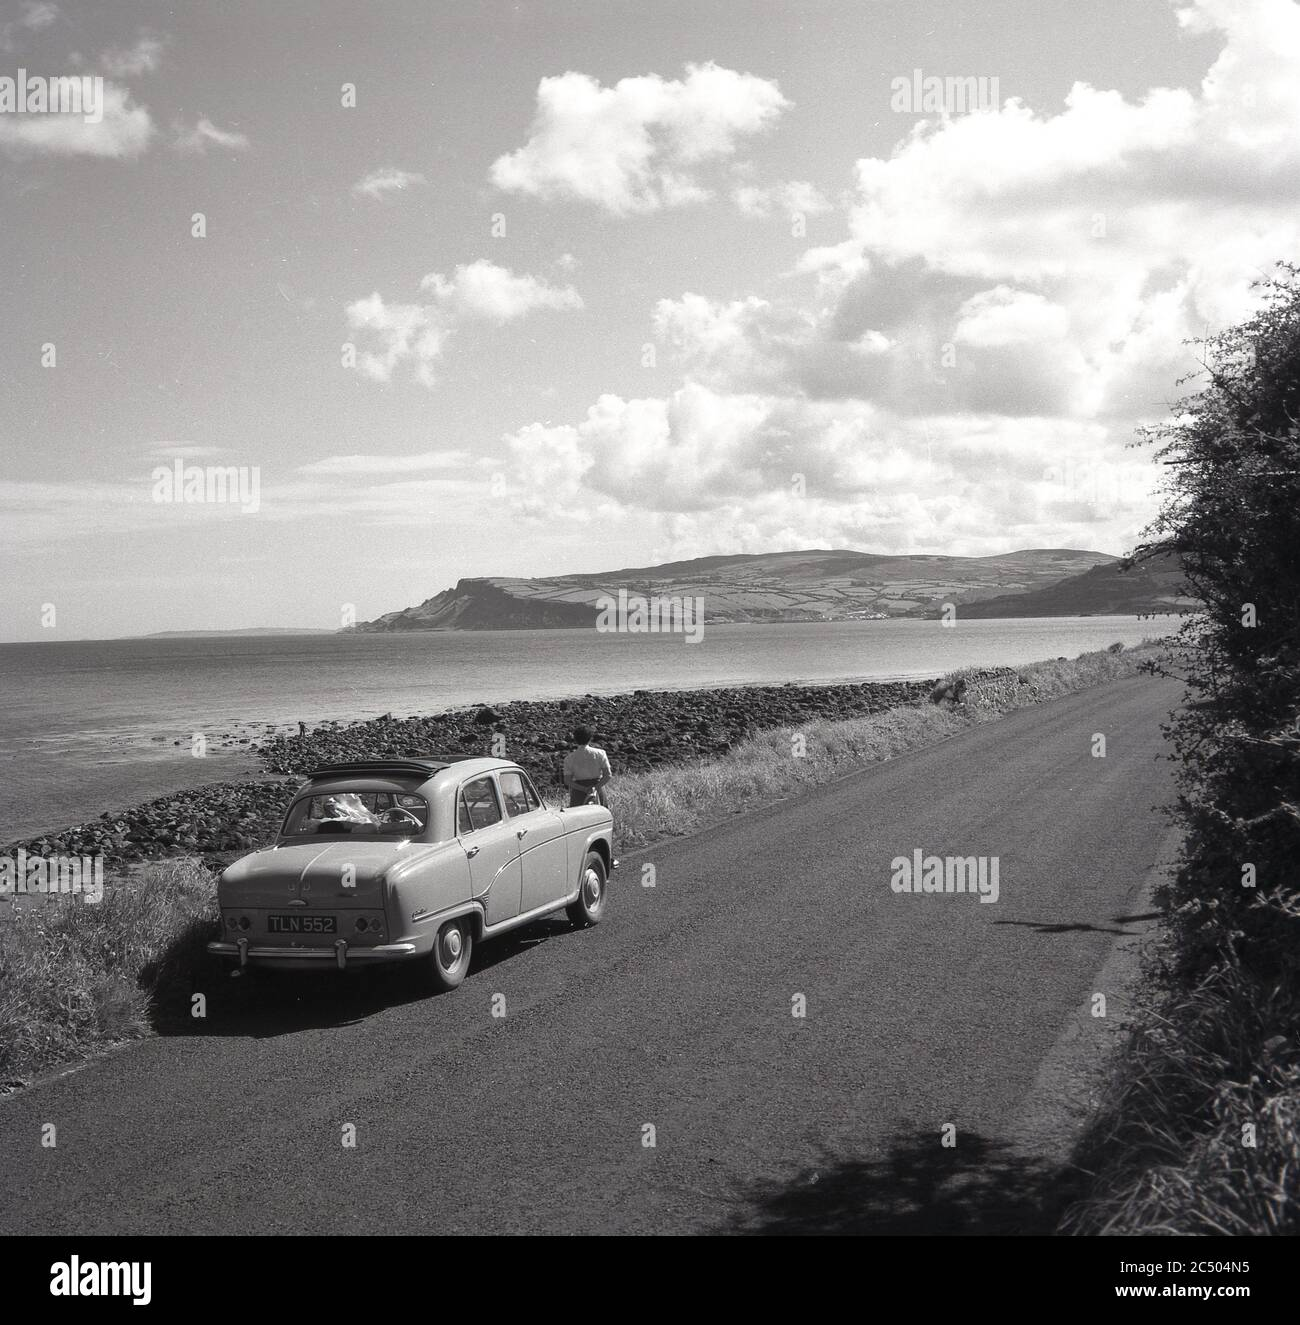 1950s, historical, a lady standing by her car of the era parked on a road on the famous Causeway coastal route, Co. Antrim, Northern Ireland, one of the most famous scenic driving routes in the world. From Belfast to Londonderry (Derry) the winding road takes in the rugged and spectacular coastline of Northern Ireland. Stock Photo